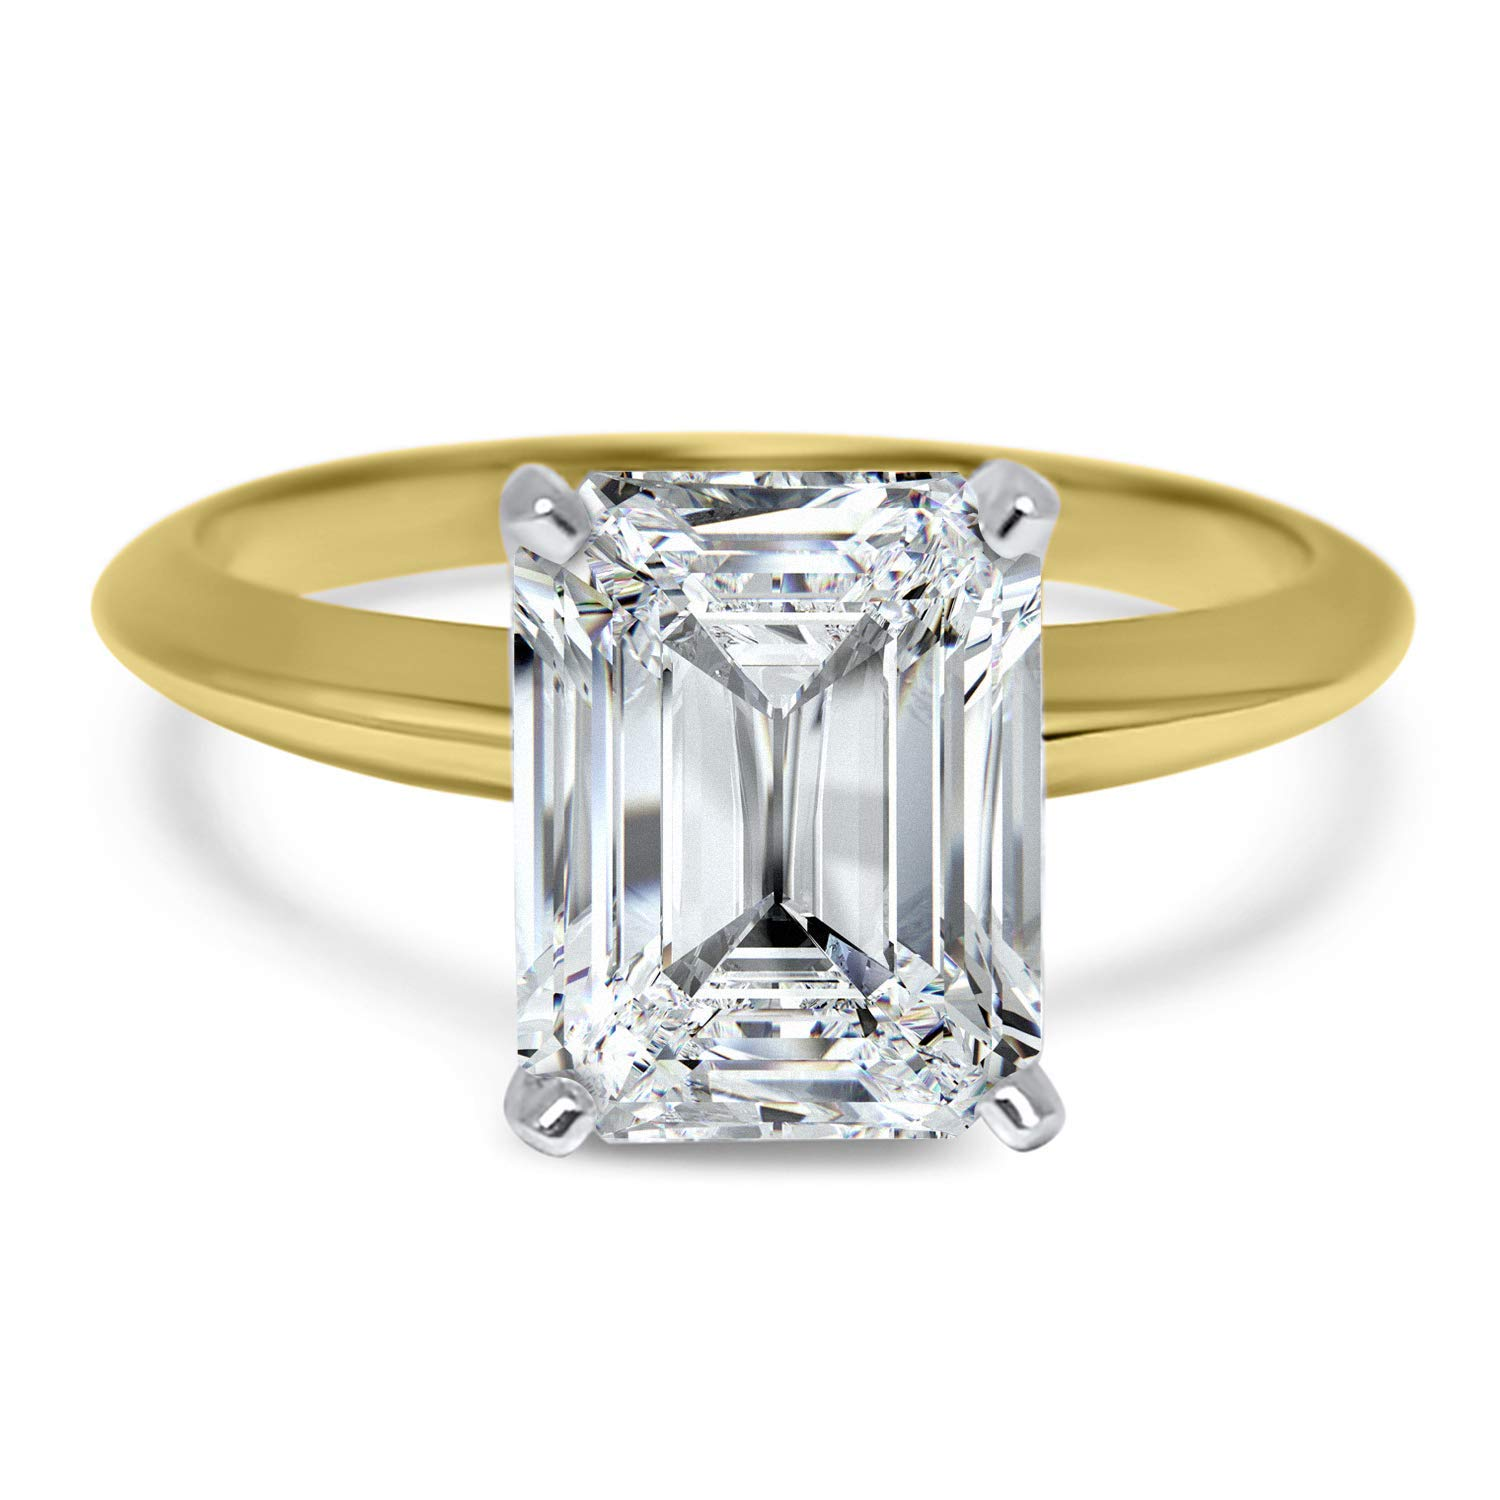 Amazon Com 2 Carat Forever One Colorless Emerald Cut Solitaire Moissanite Engagement Ring 14k Yellow Gold Handmade